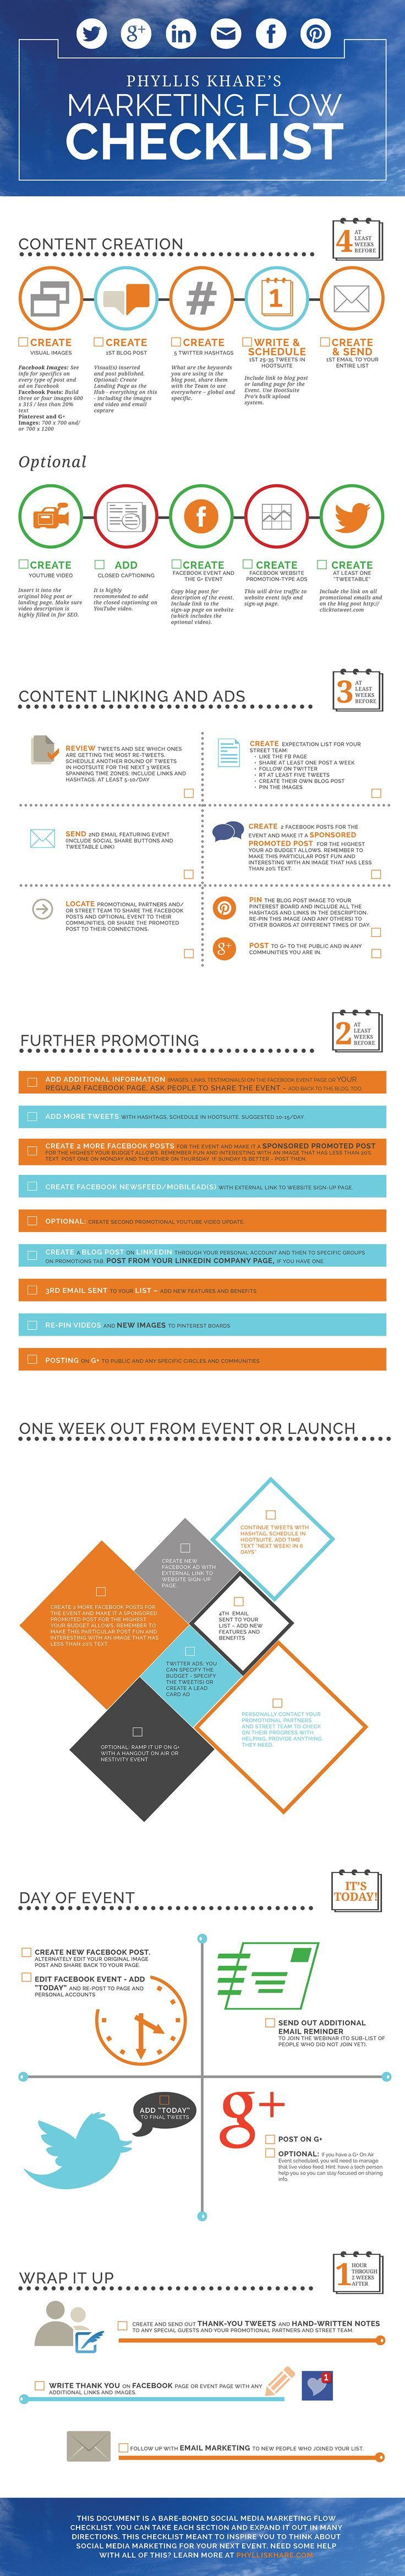 Essential checklist for marketing an event or product launch on ...